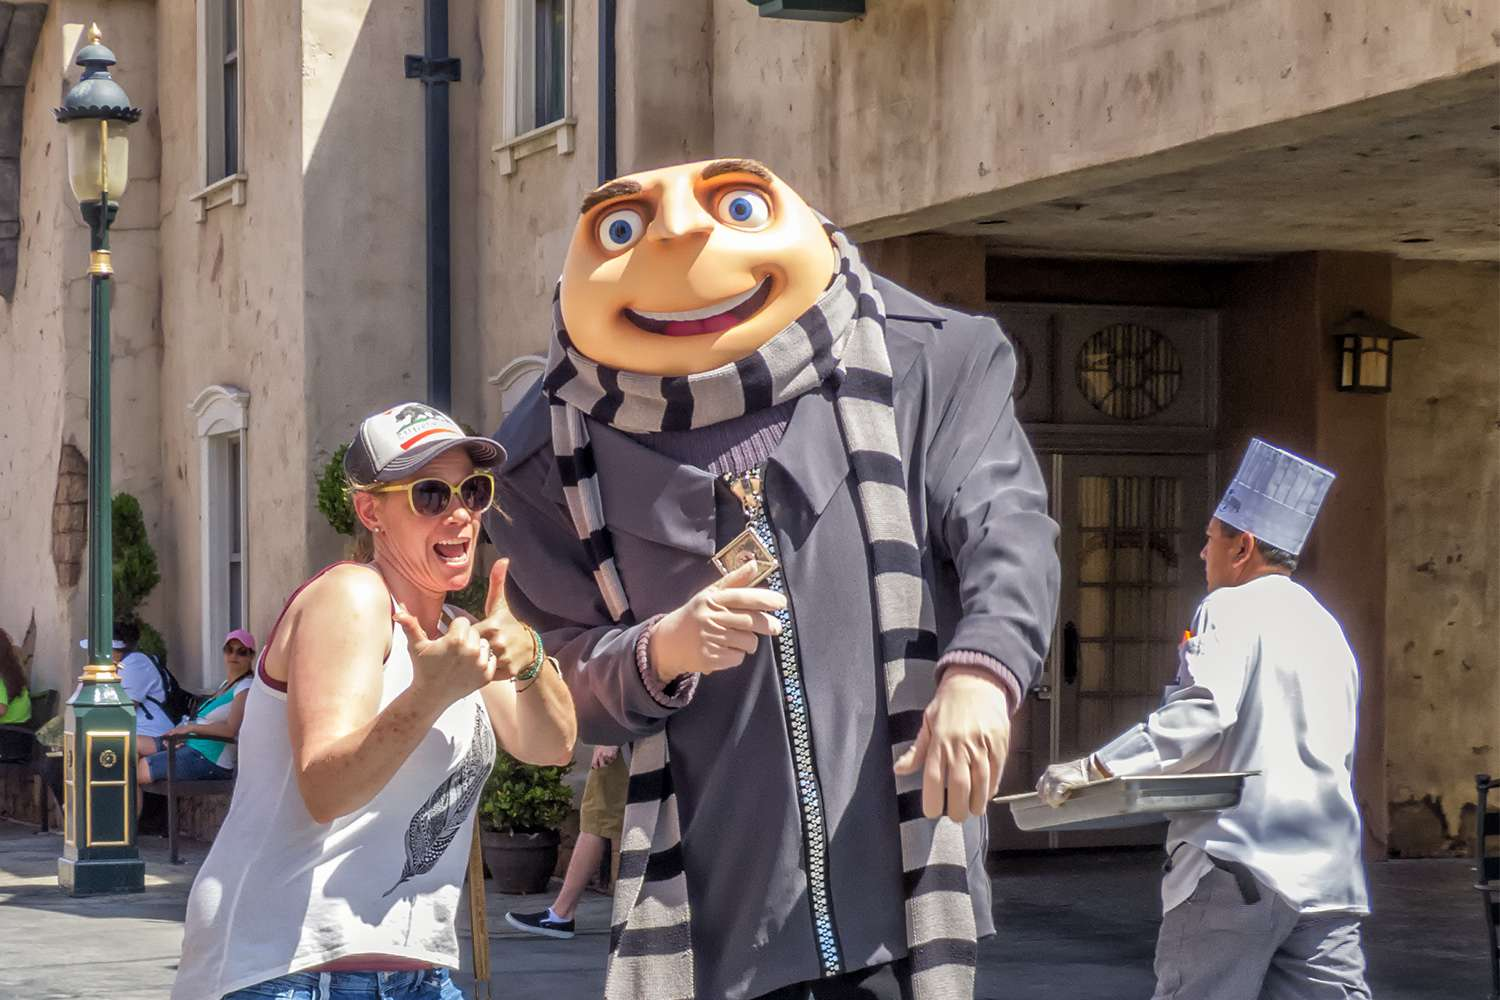 Meeting Gru from Despicable Me at Universal Studios Hollywood